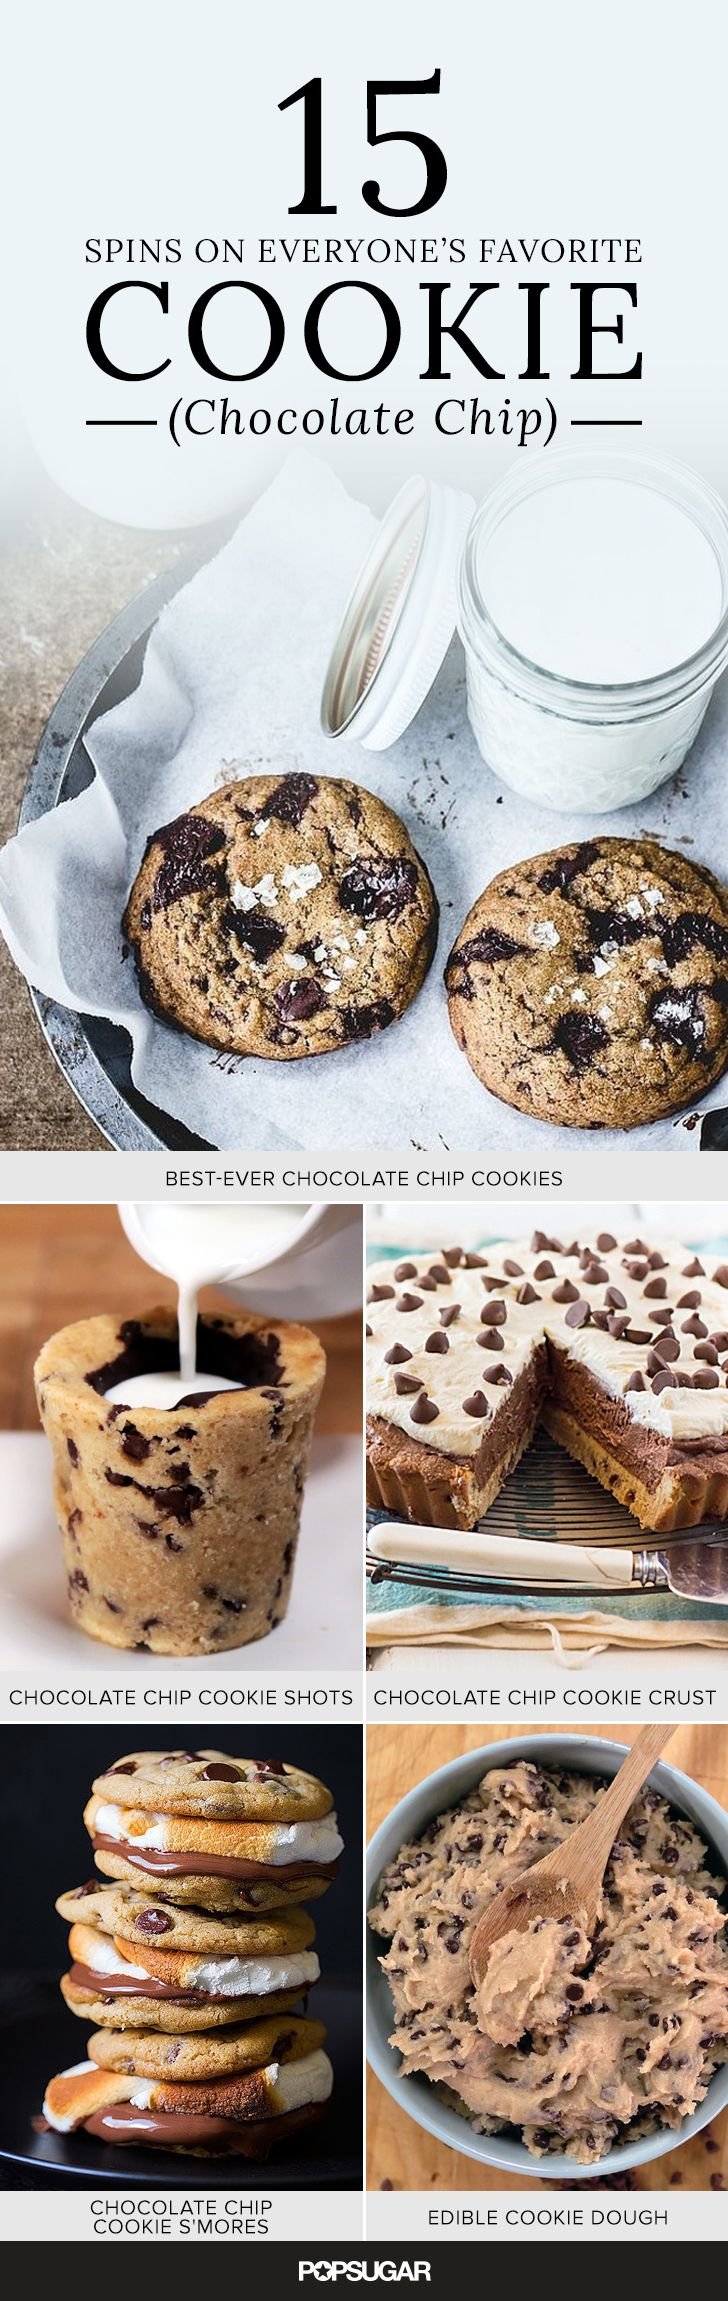 When it comes to chocolate chip cookies, there's nothing like a few classic, much-loved recipes, but if you're feeling in the mood for a riff, like chocolate chip cookie cake or even a guilt-free vegan cookie dough, this list has you covered.